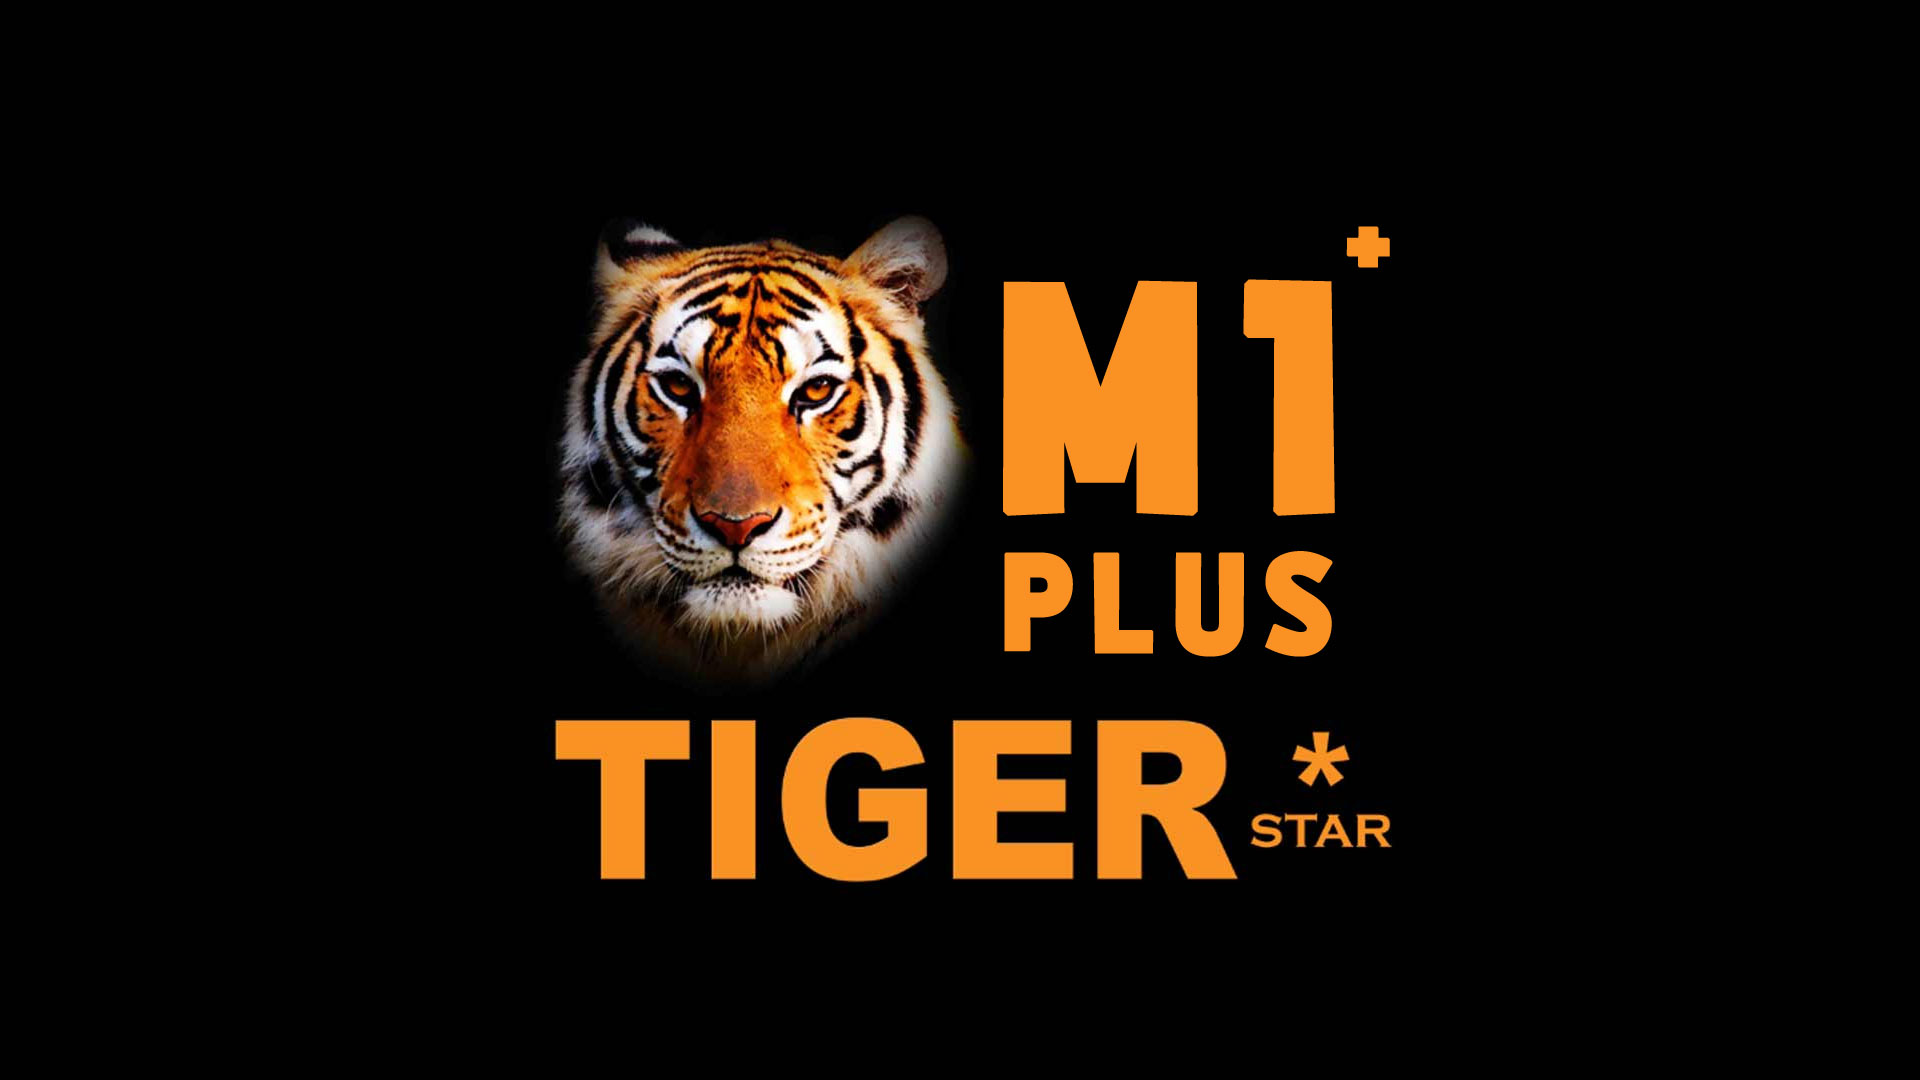 Download Software Tiger Star M1 Plus New Update Firmware Receiver